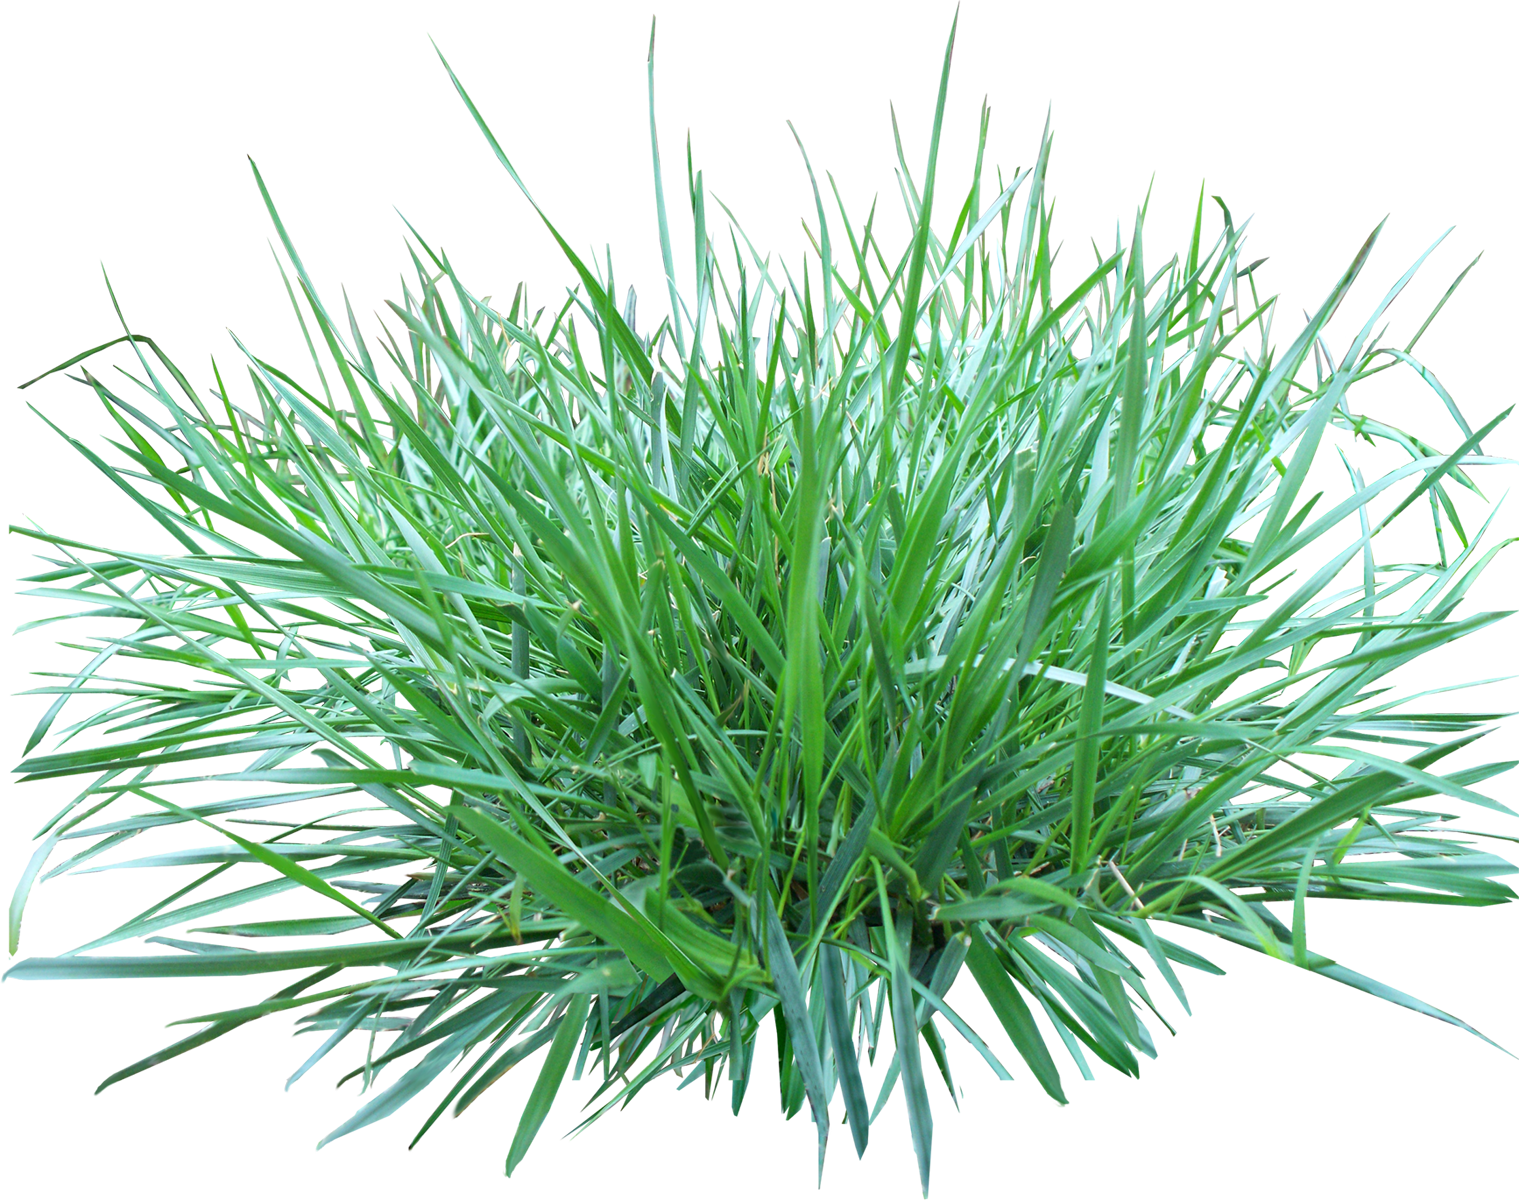 jpg library stock Tall transparent png pictures. Lawn clipart wild grass.